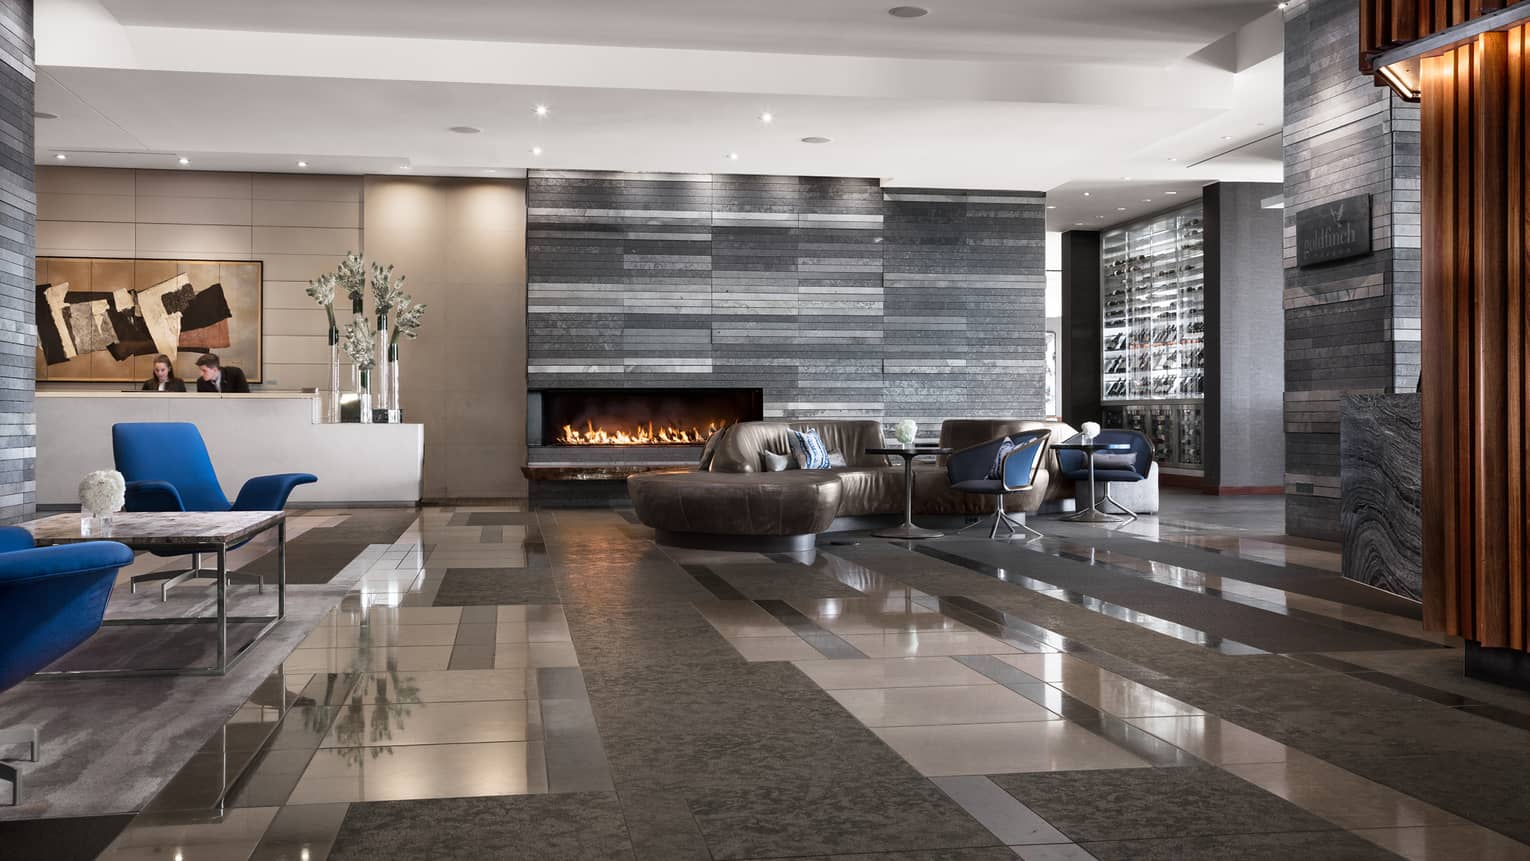 Stone tiles, marble floor, leather sofas in modern hotel lobby